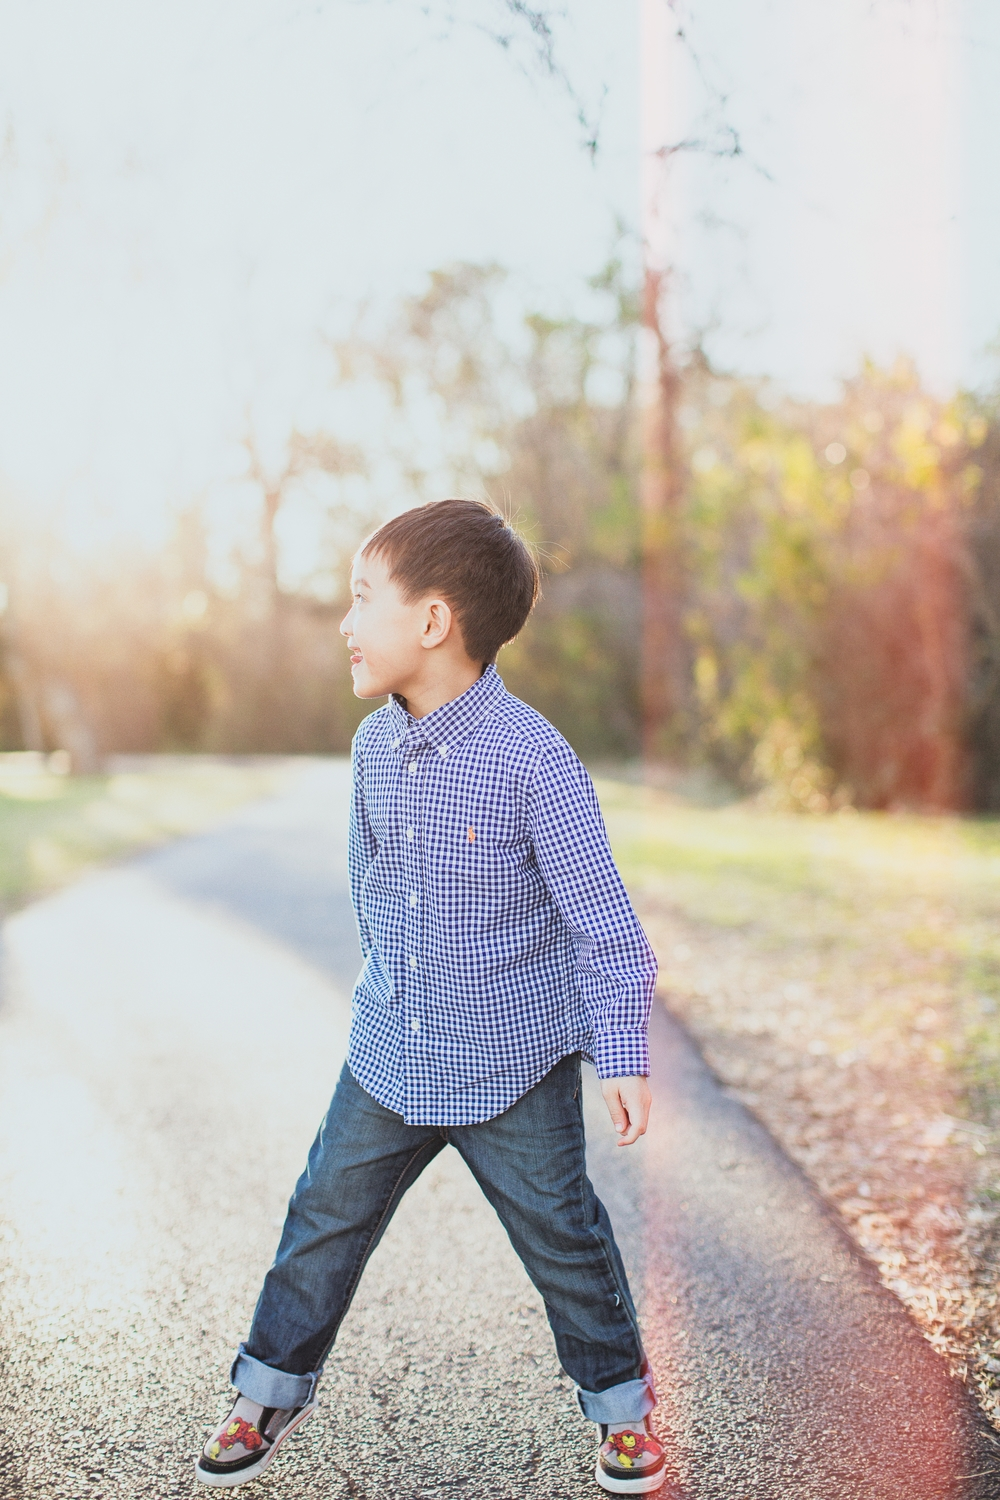 houstonfamilyphotographer_h2015_dang_color-169.jpg